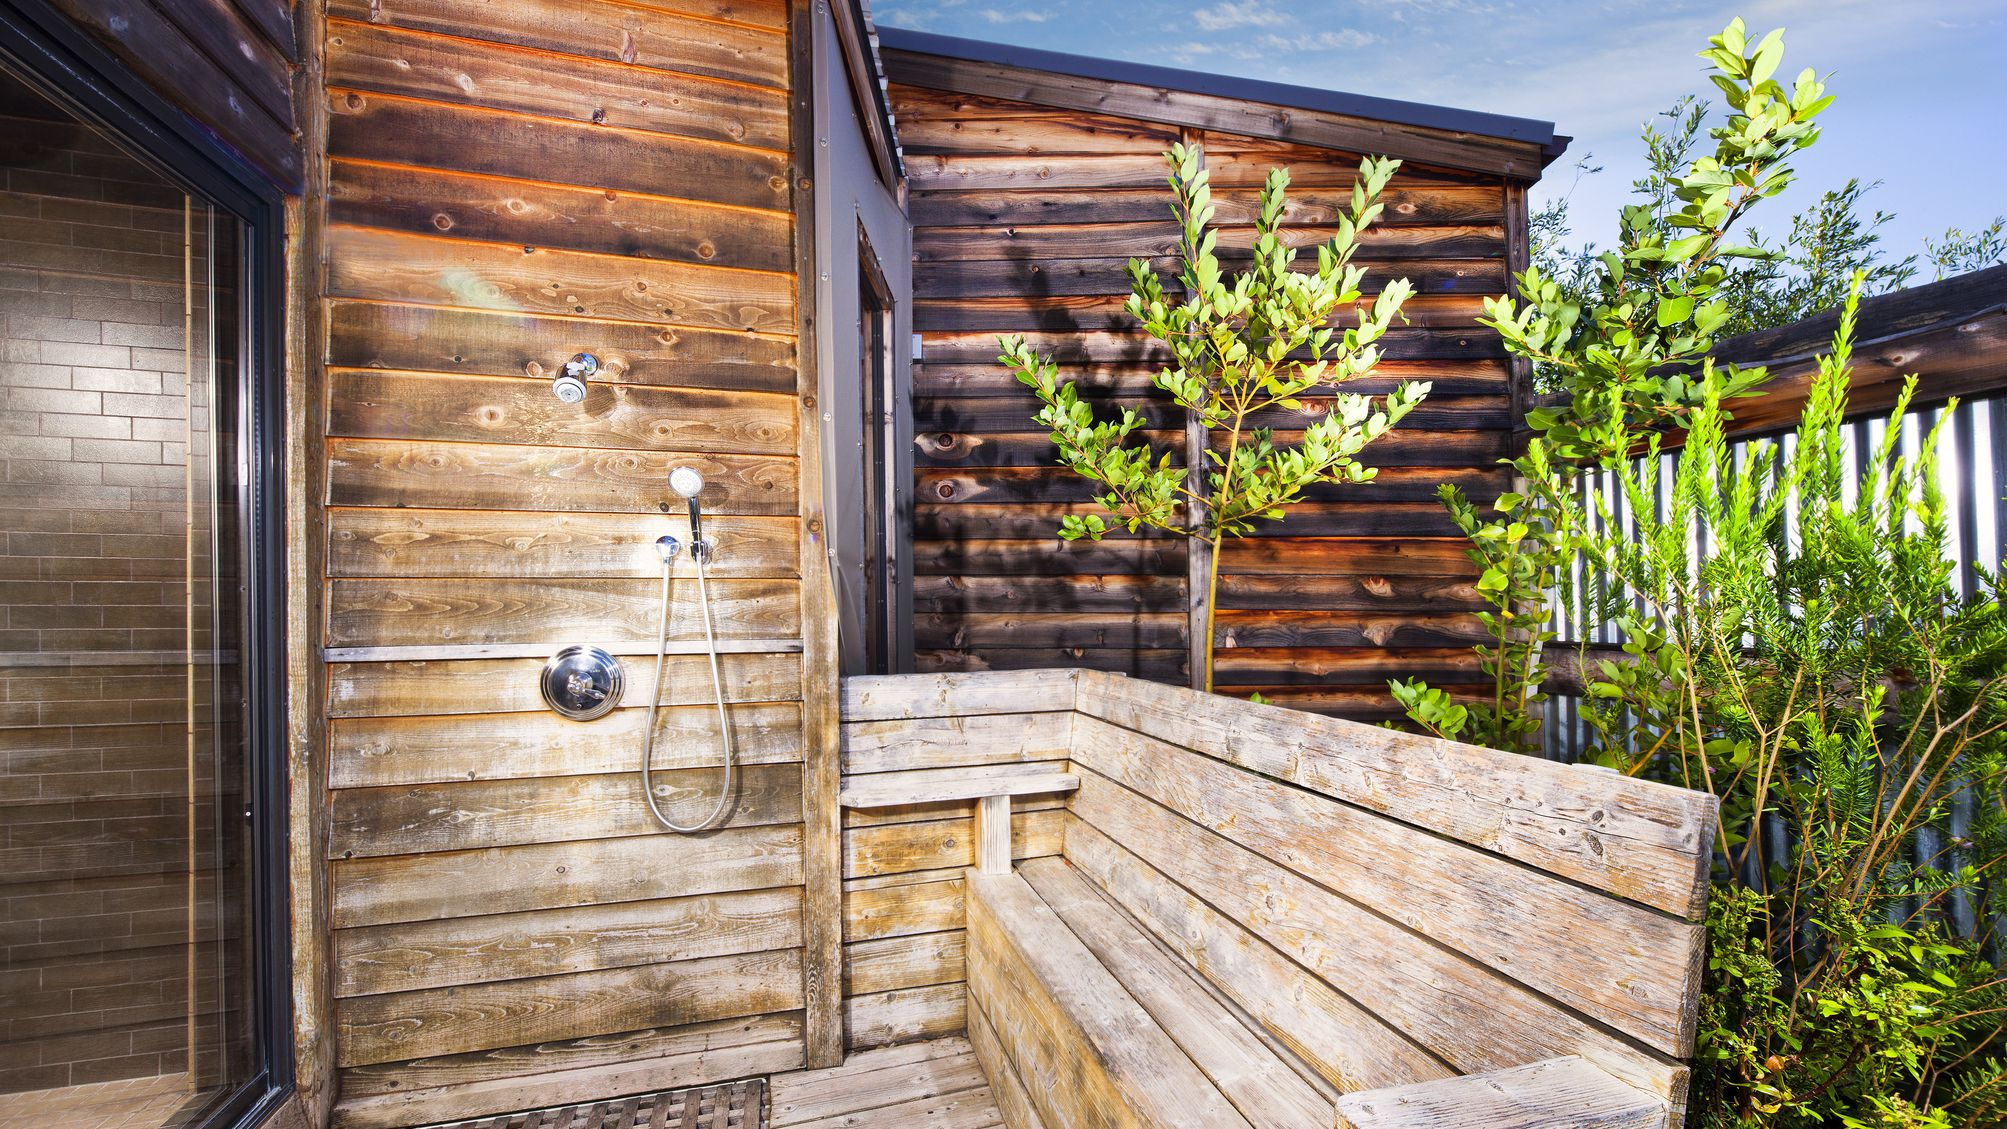 How To Build An Outdoor Shower, Outdoor Shower Drainage Pans